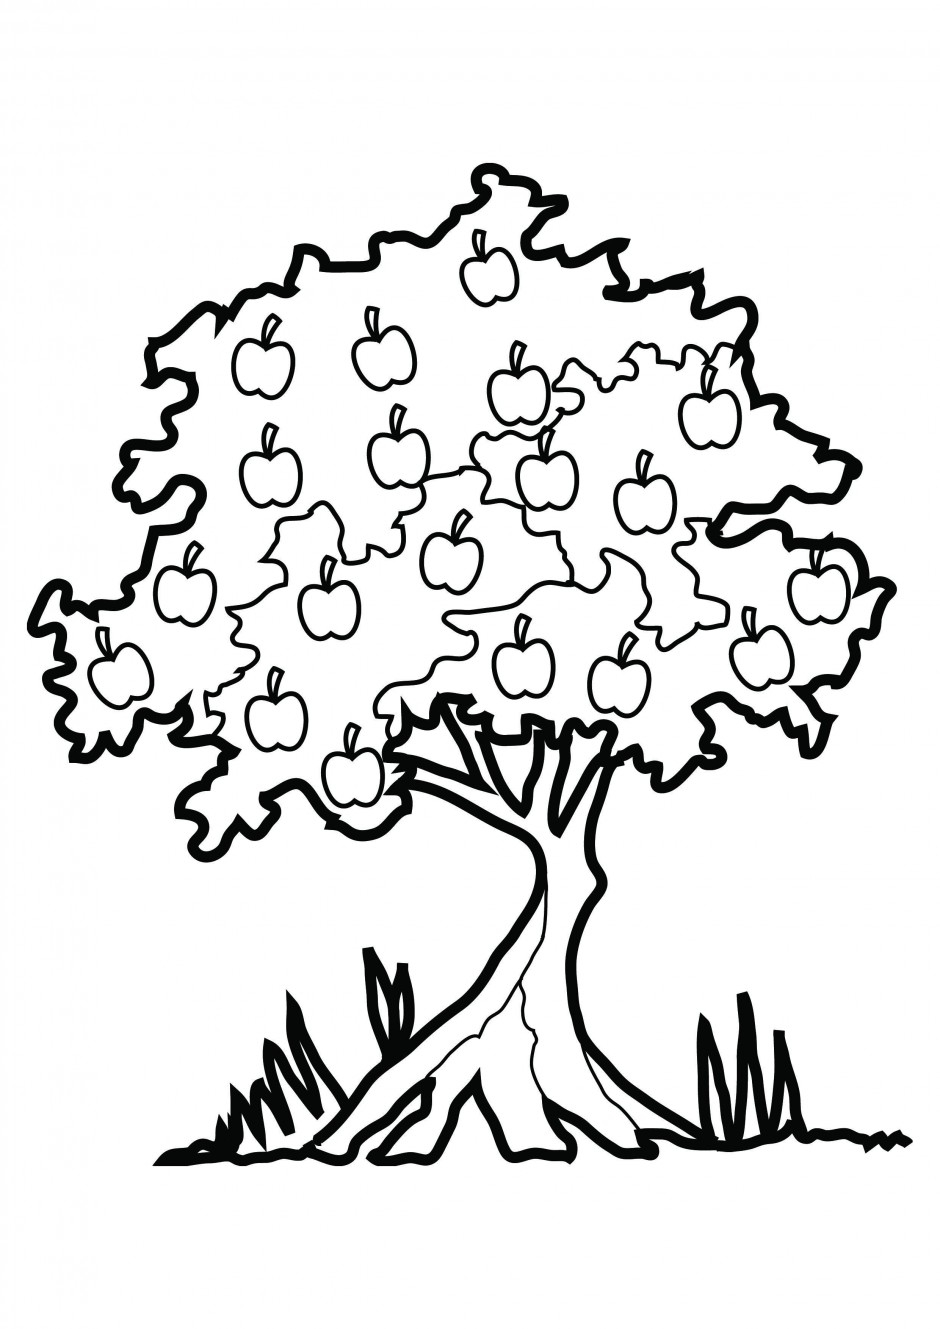 940x1329 apple tree clipart black and white - Christmas Tree Clipart Black And White